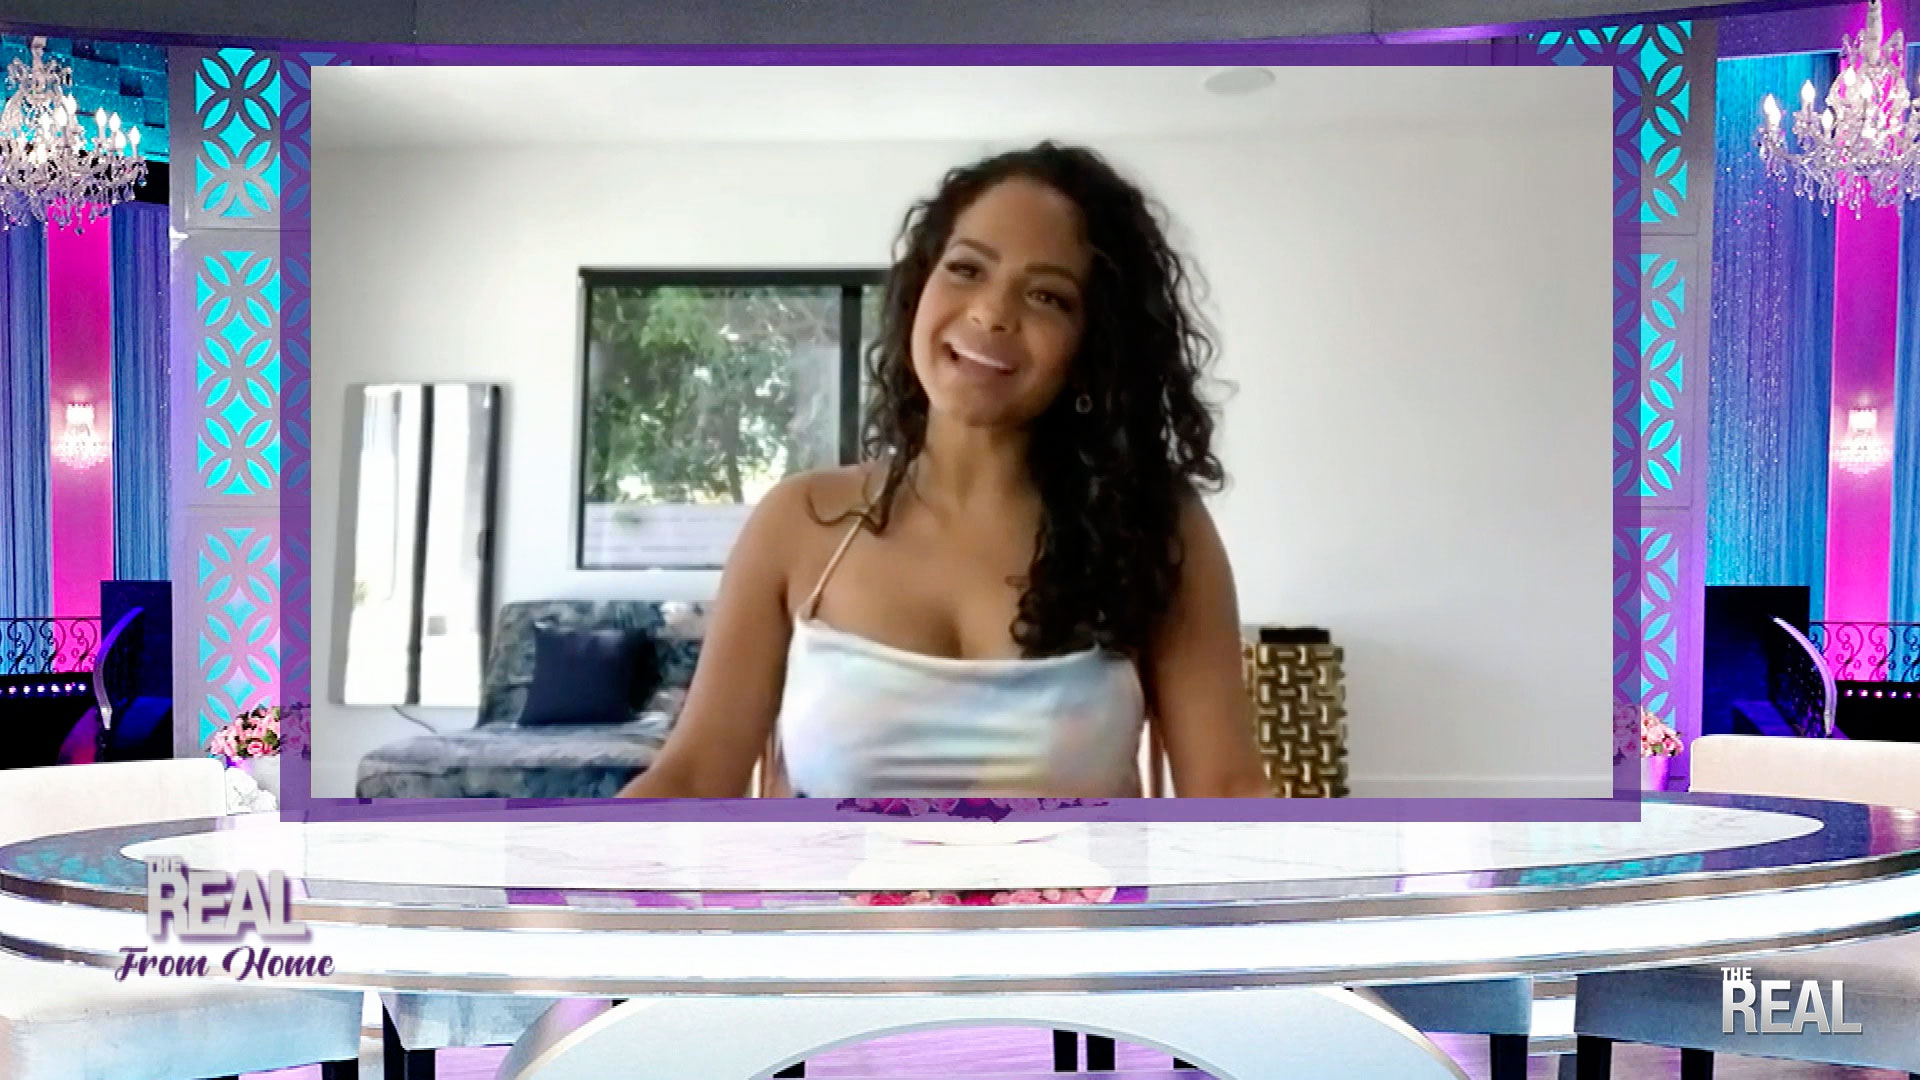 The Real From Home: Christina Milian Talks About Other People's Focus On Her Body After Baby